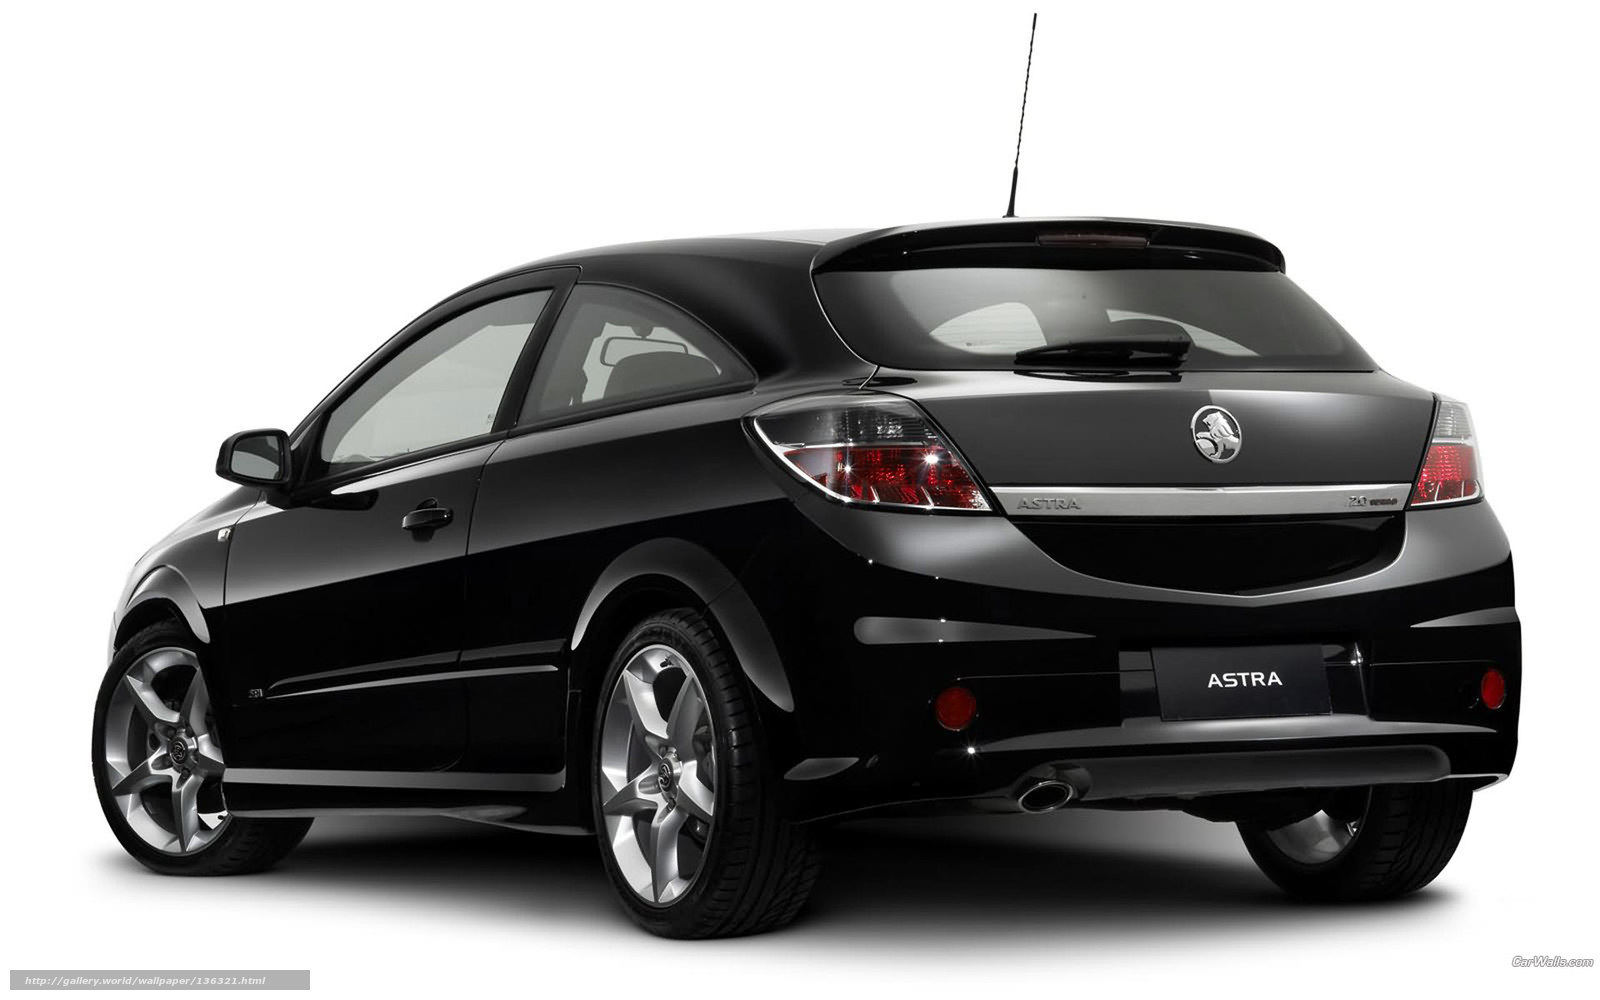 Download Wallpaper Holden Astra Car Machinery Free